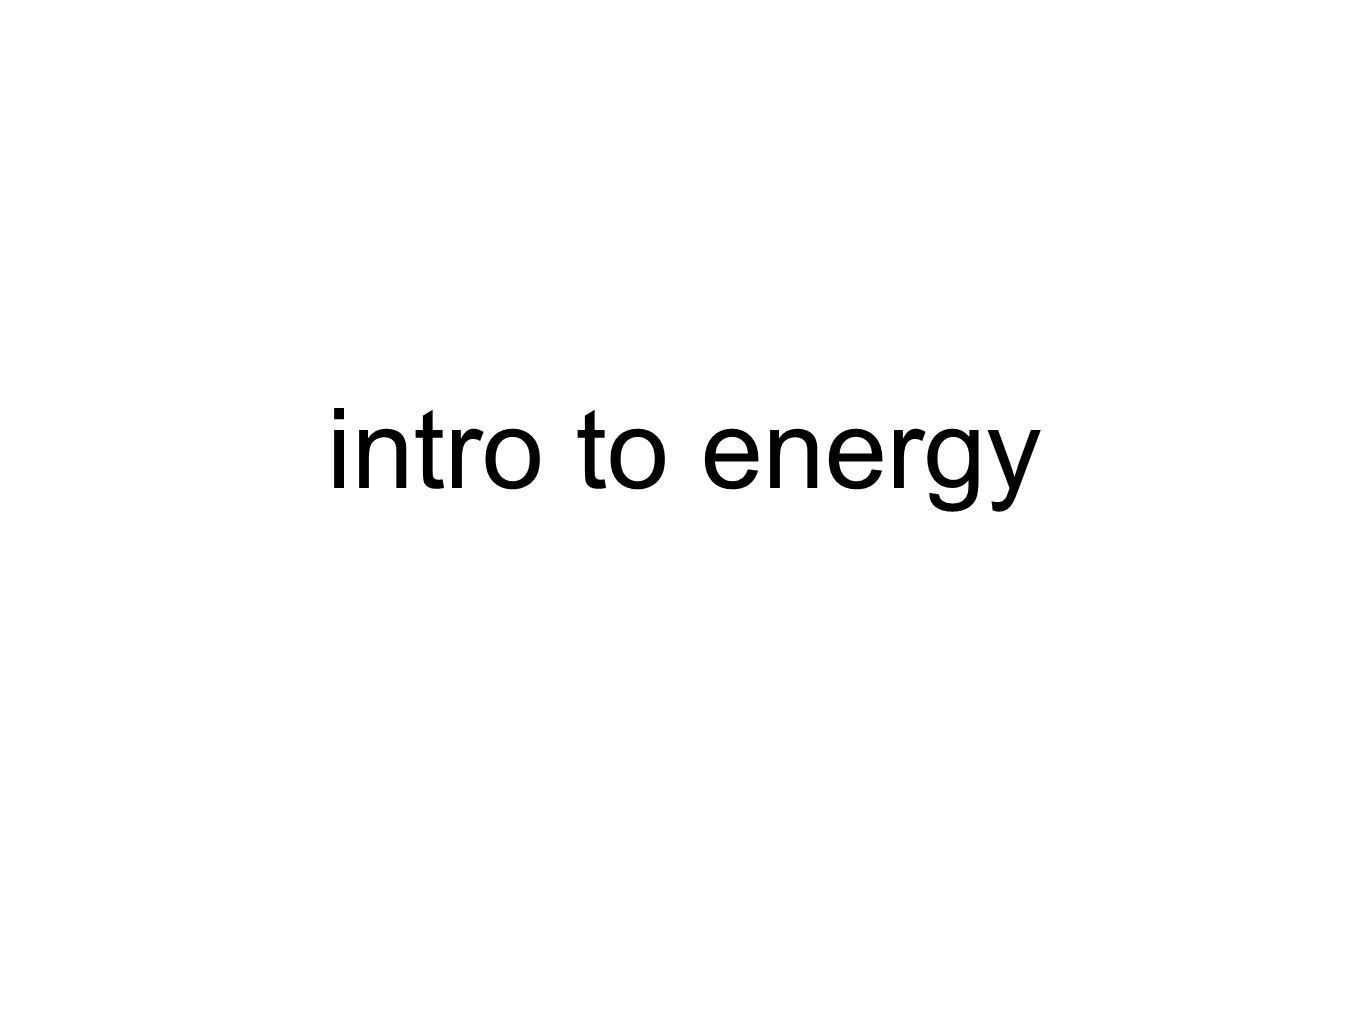 intro to energy